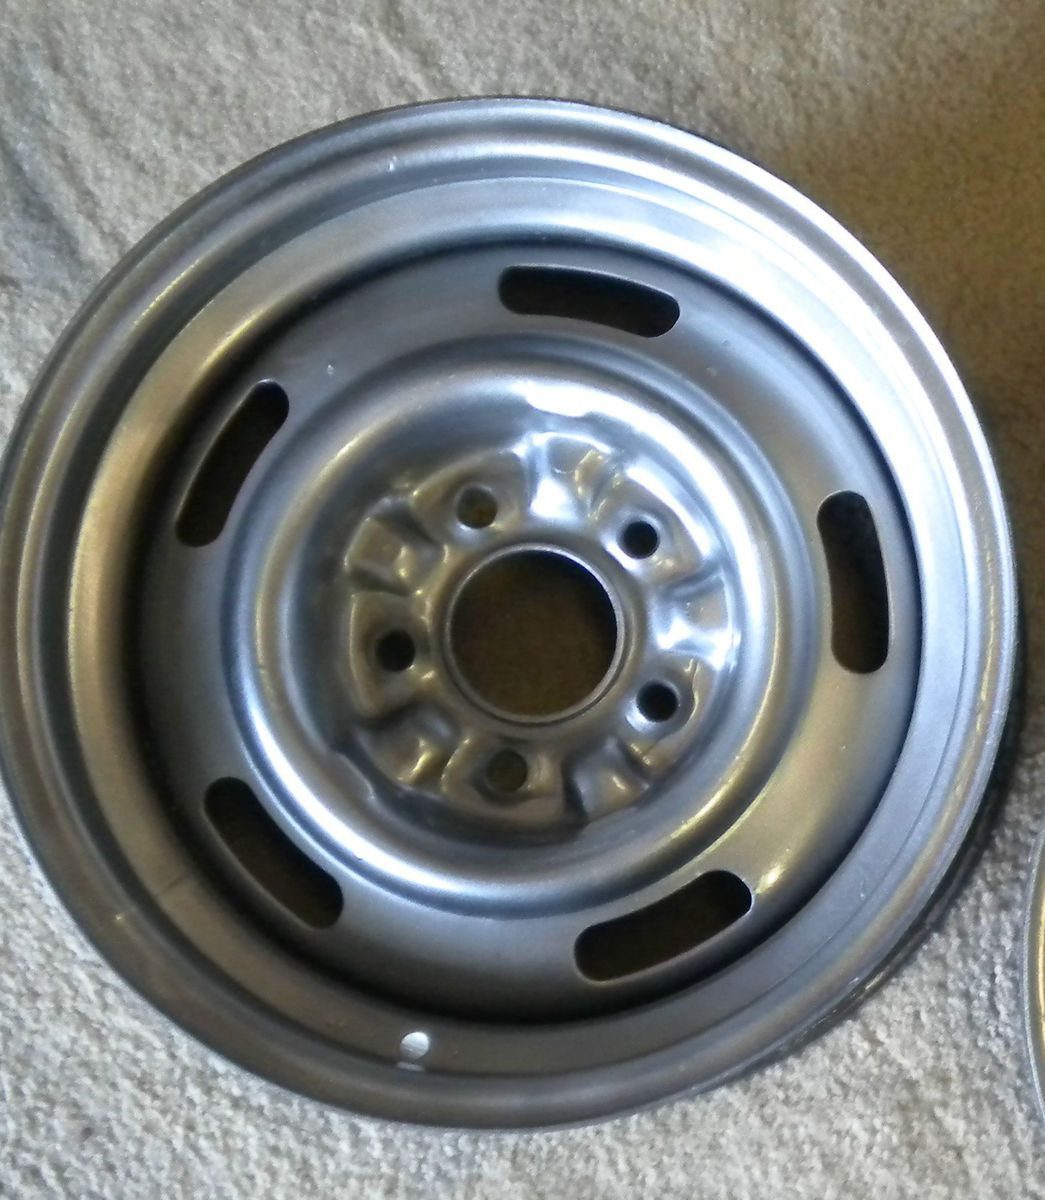 GM Chevy Steel Rally Wheel Camaro Nova Chevelle Corvette Impala Elky